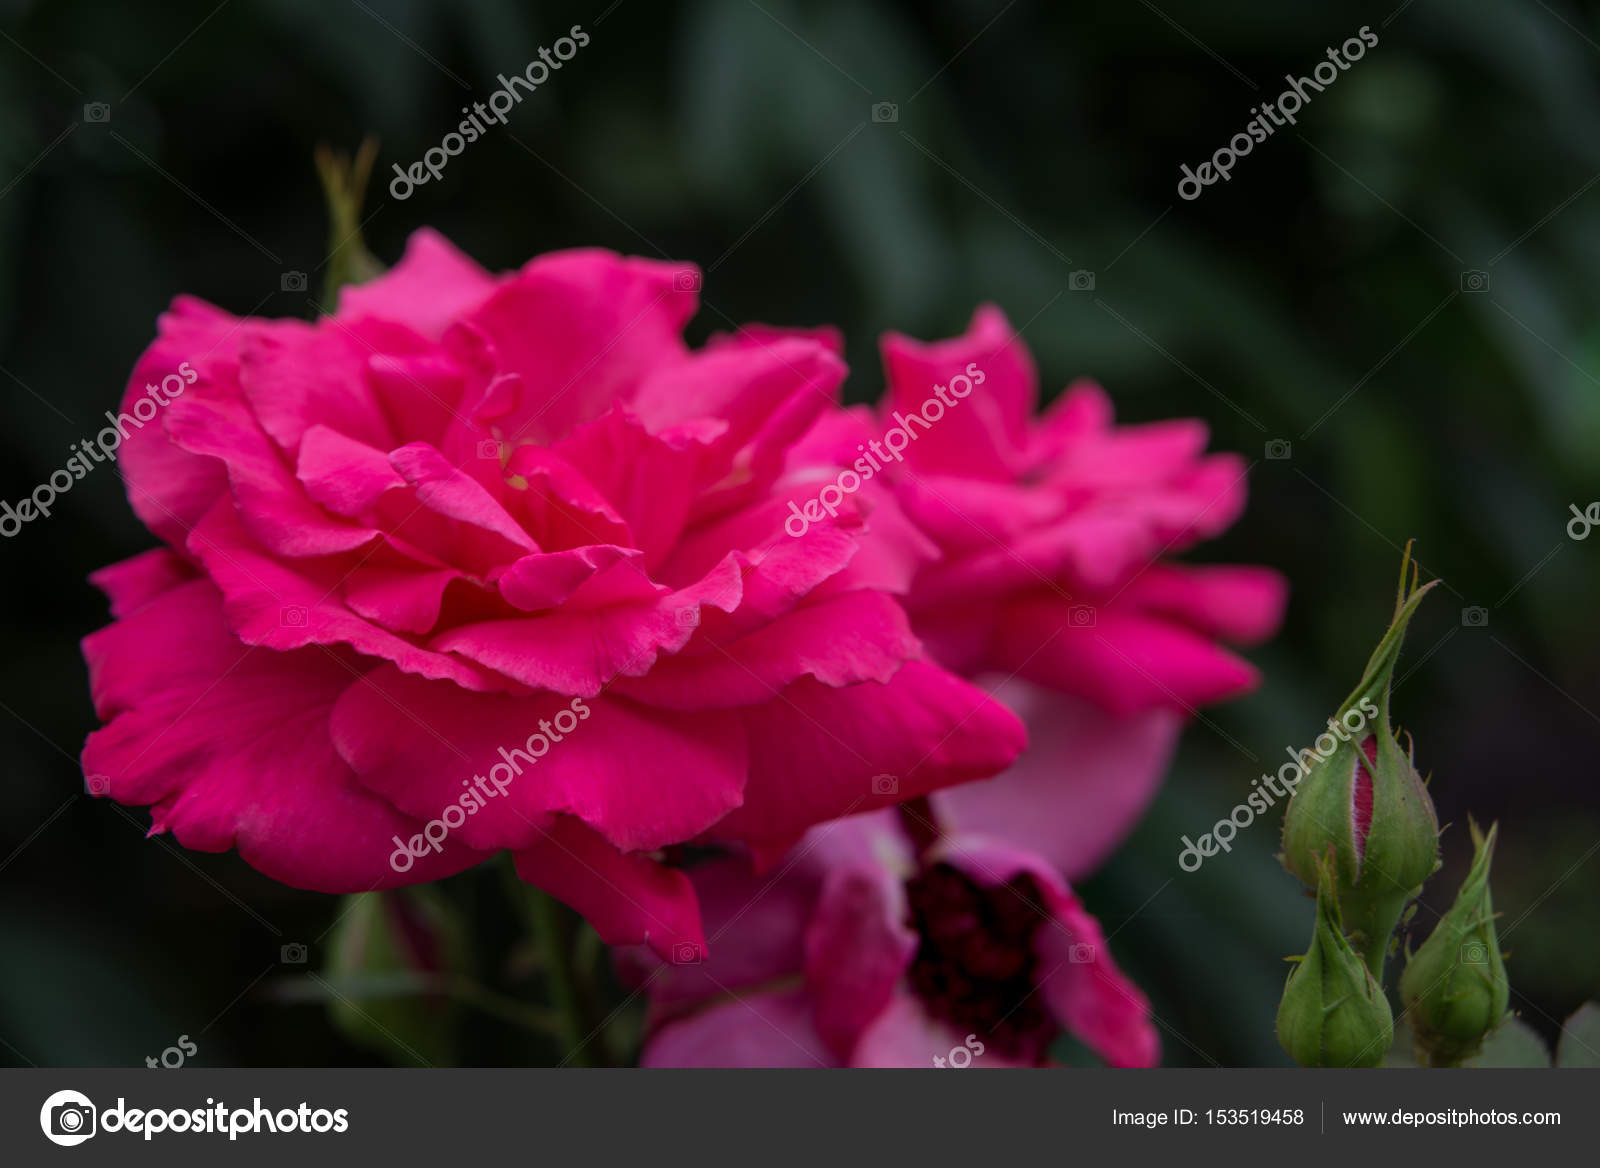 Pink roses outdoors stock photo epitavi 153519458 beautiful big pink roses outdoors close up on a dark background photo by epitavi izmirmasajfo